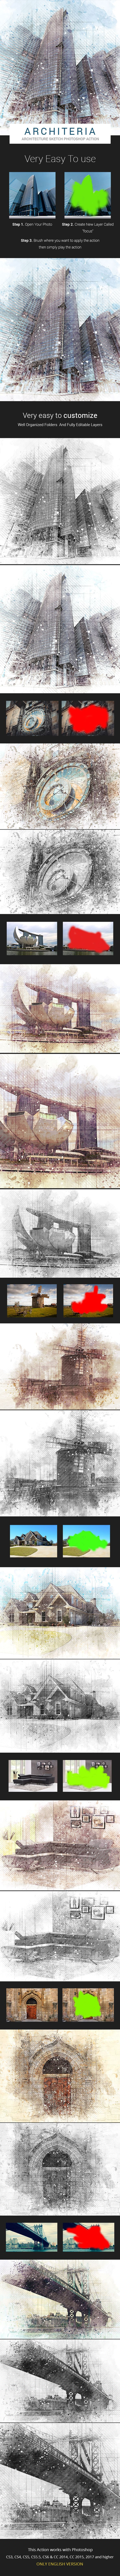 Architeria - Architecture Sketch #Photoshop #Action - Photo #Effects Actions